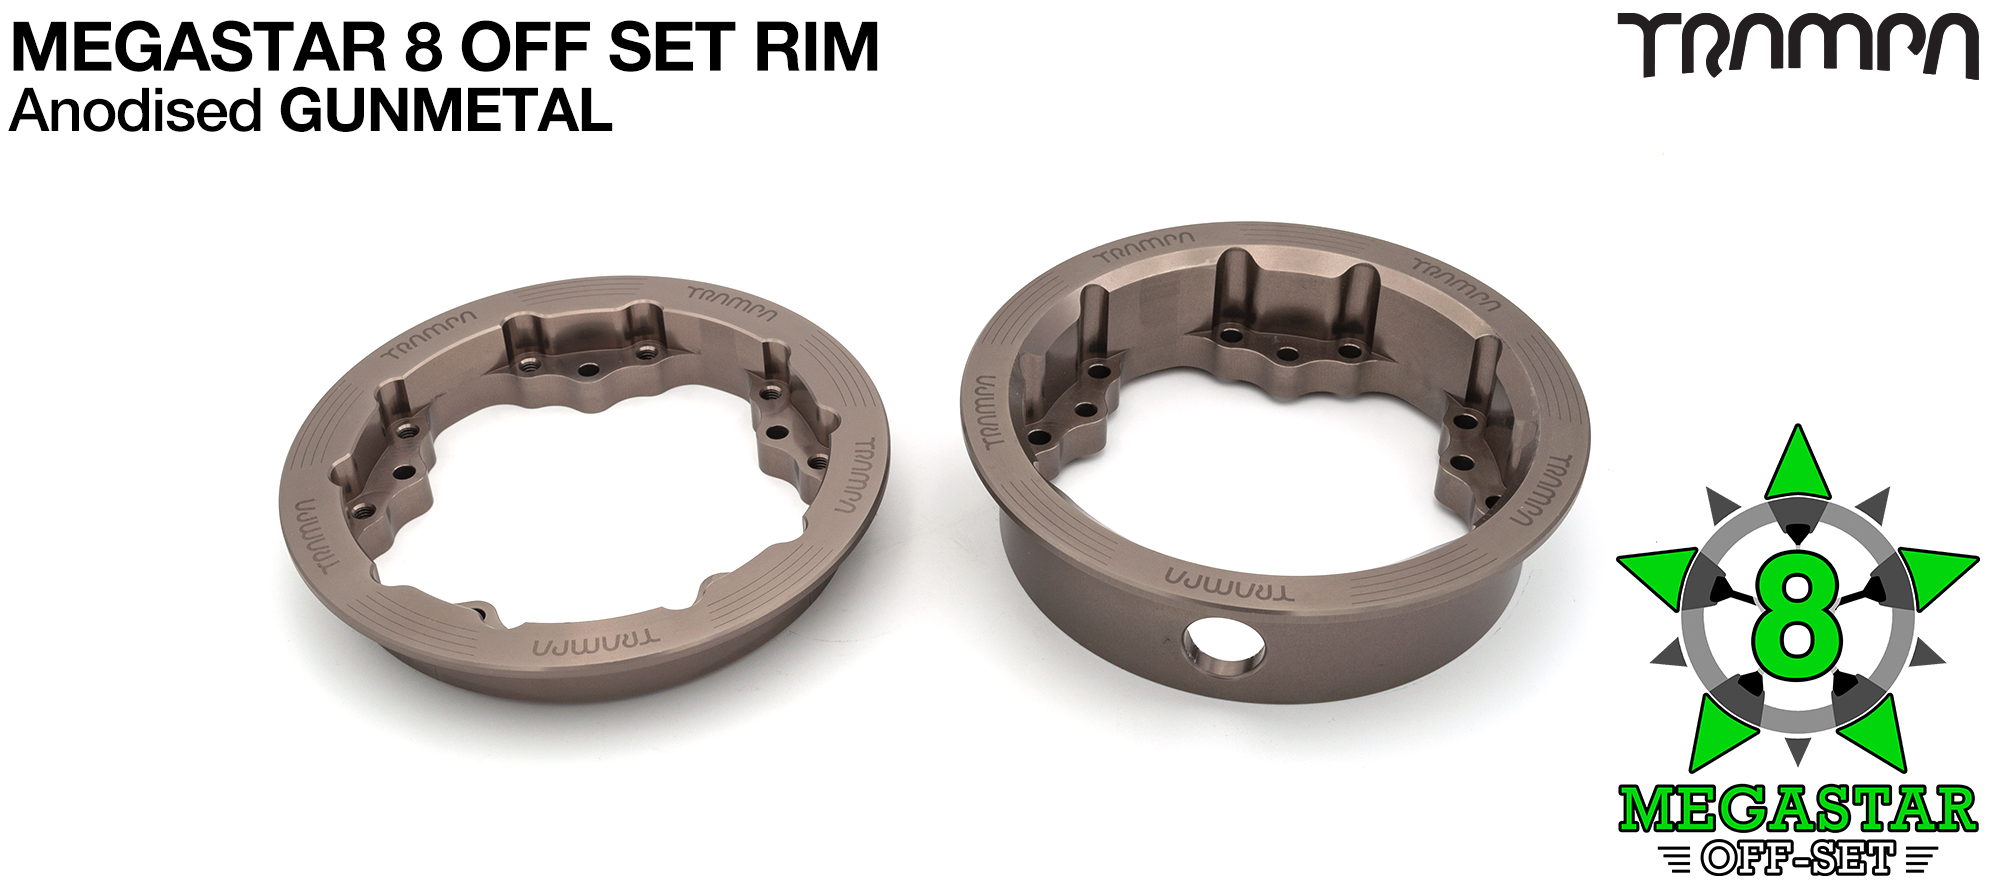 OFF-SET 8 inch MEGASTAR Rims - GUNMETAL